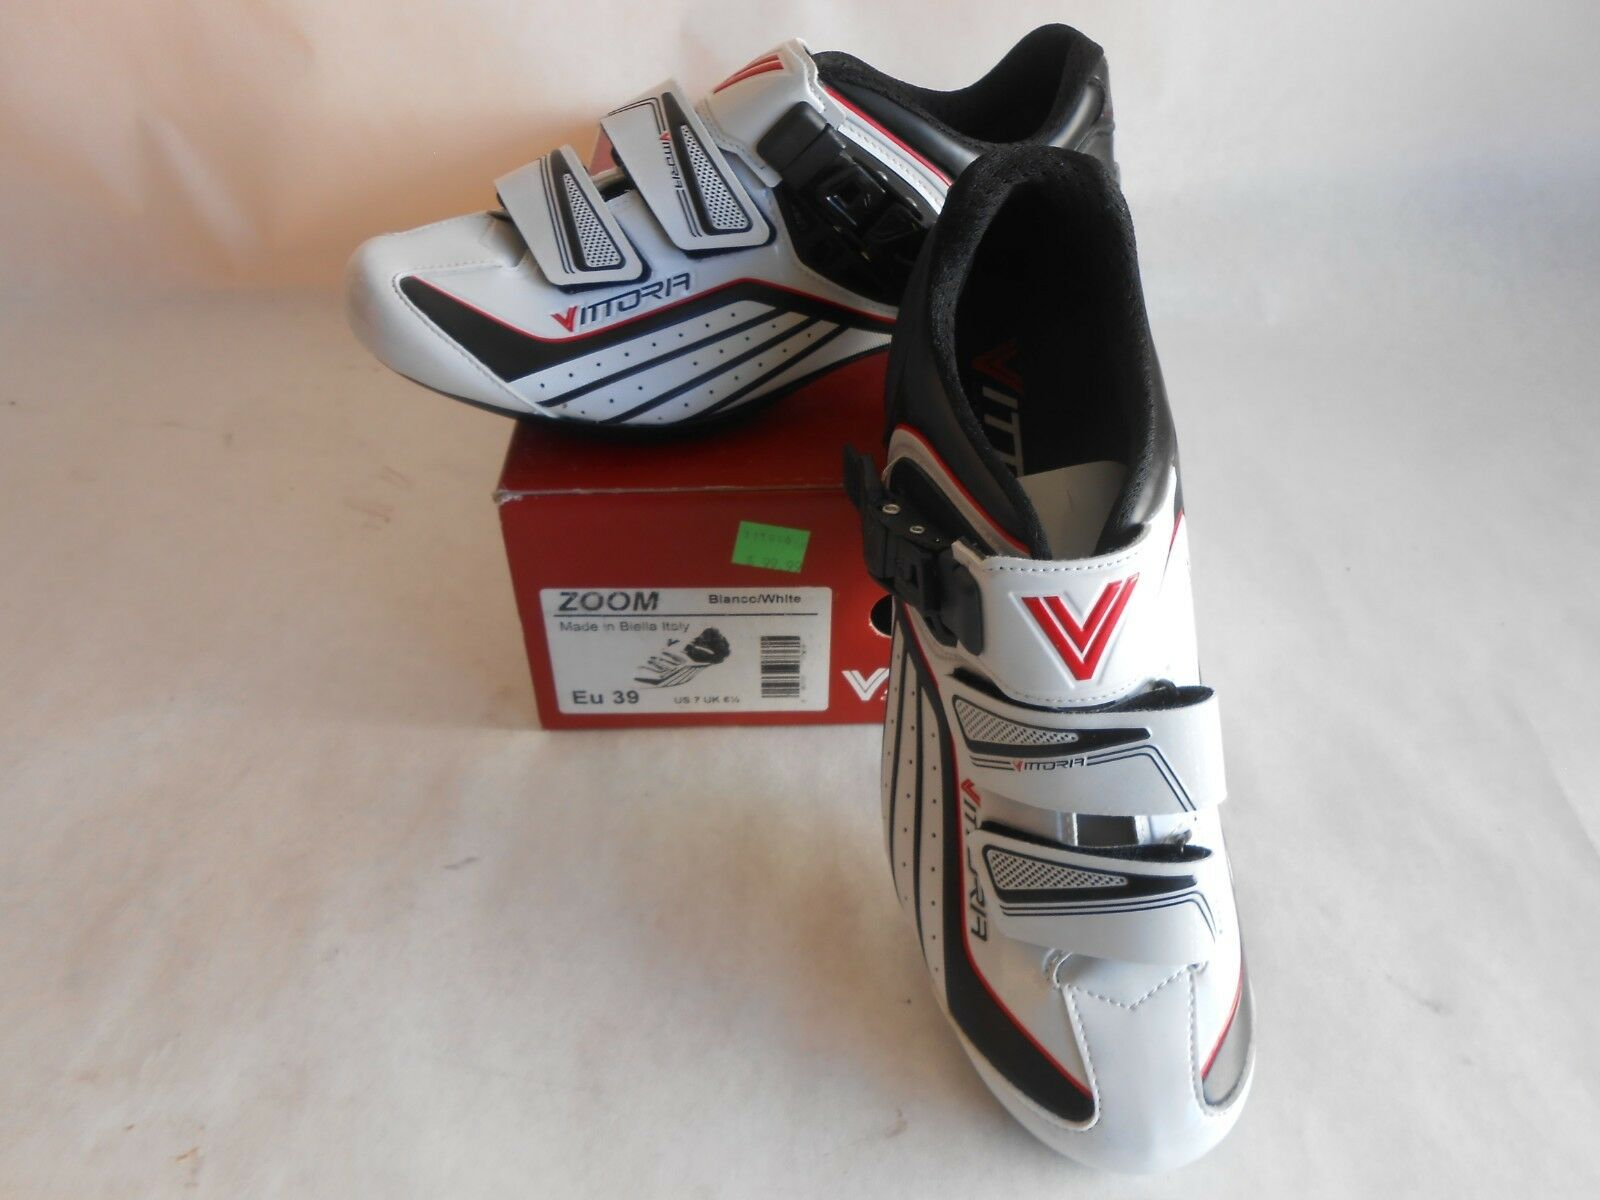 Road Us Shoes Men's Vittoria White Size Bicycle 7 Zoom Cycling Italy MjqSGULzVp